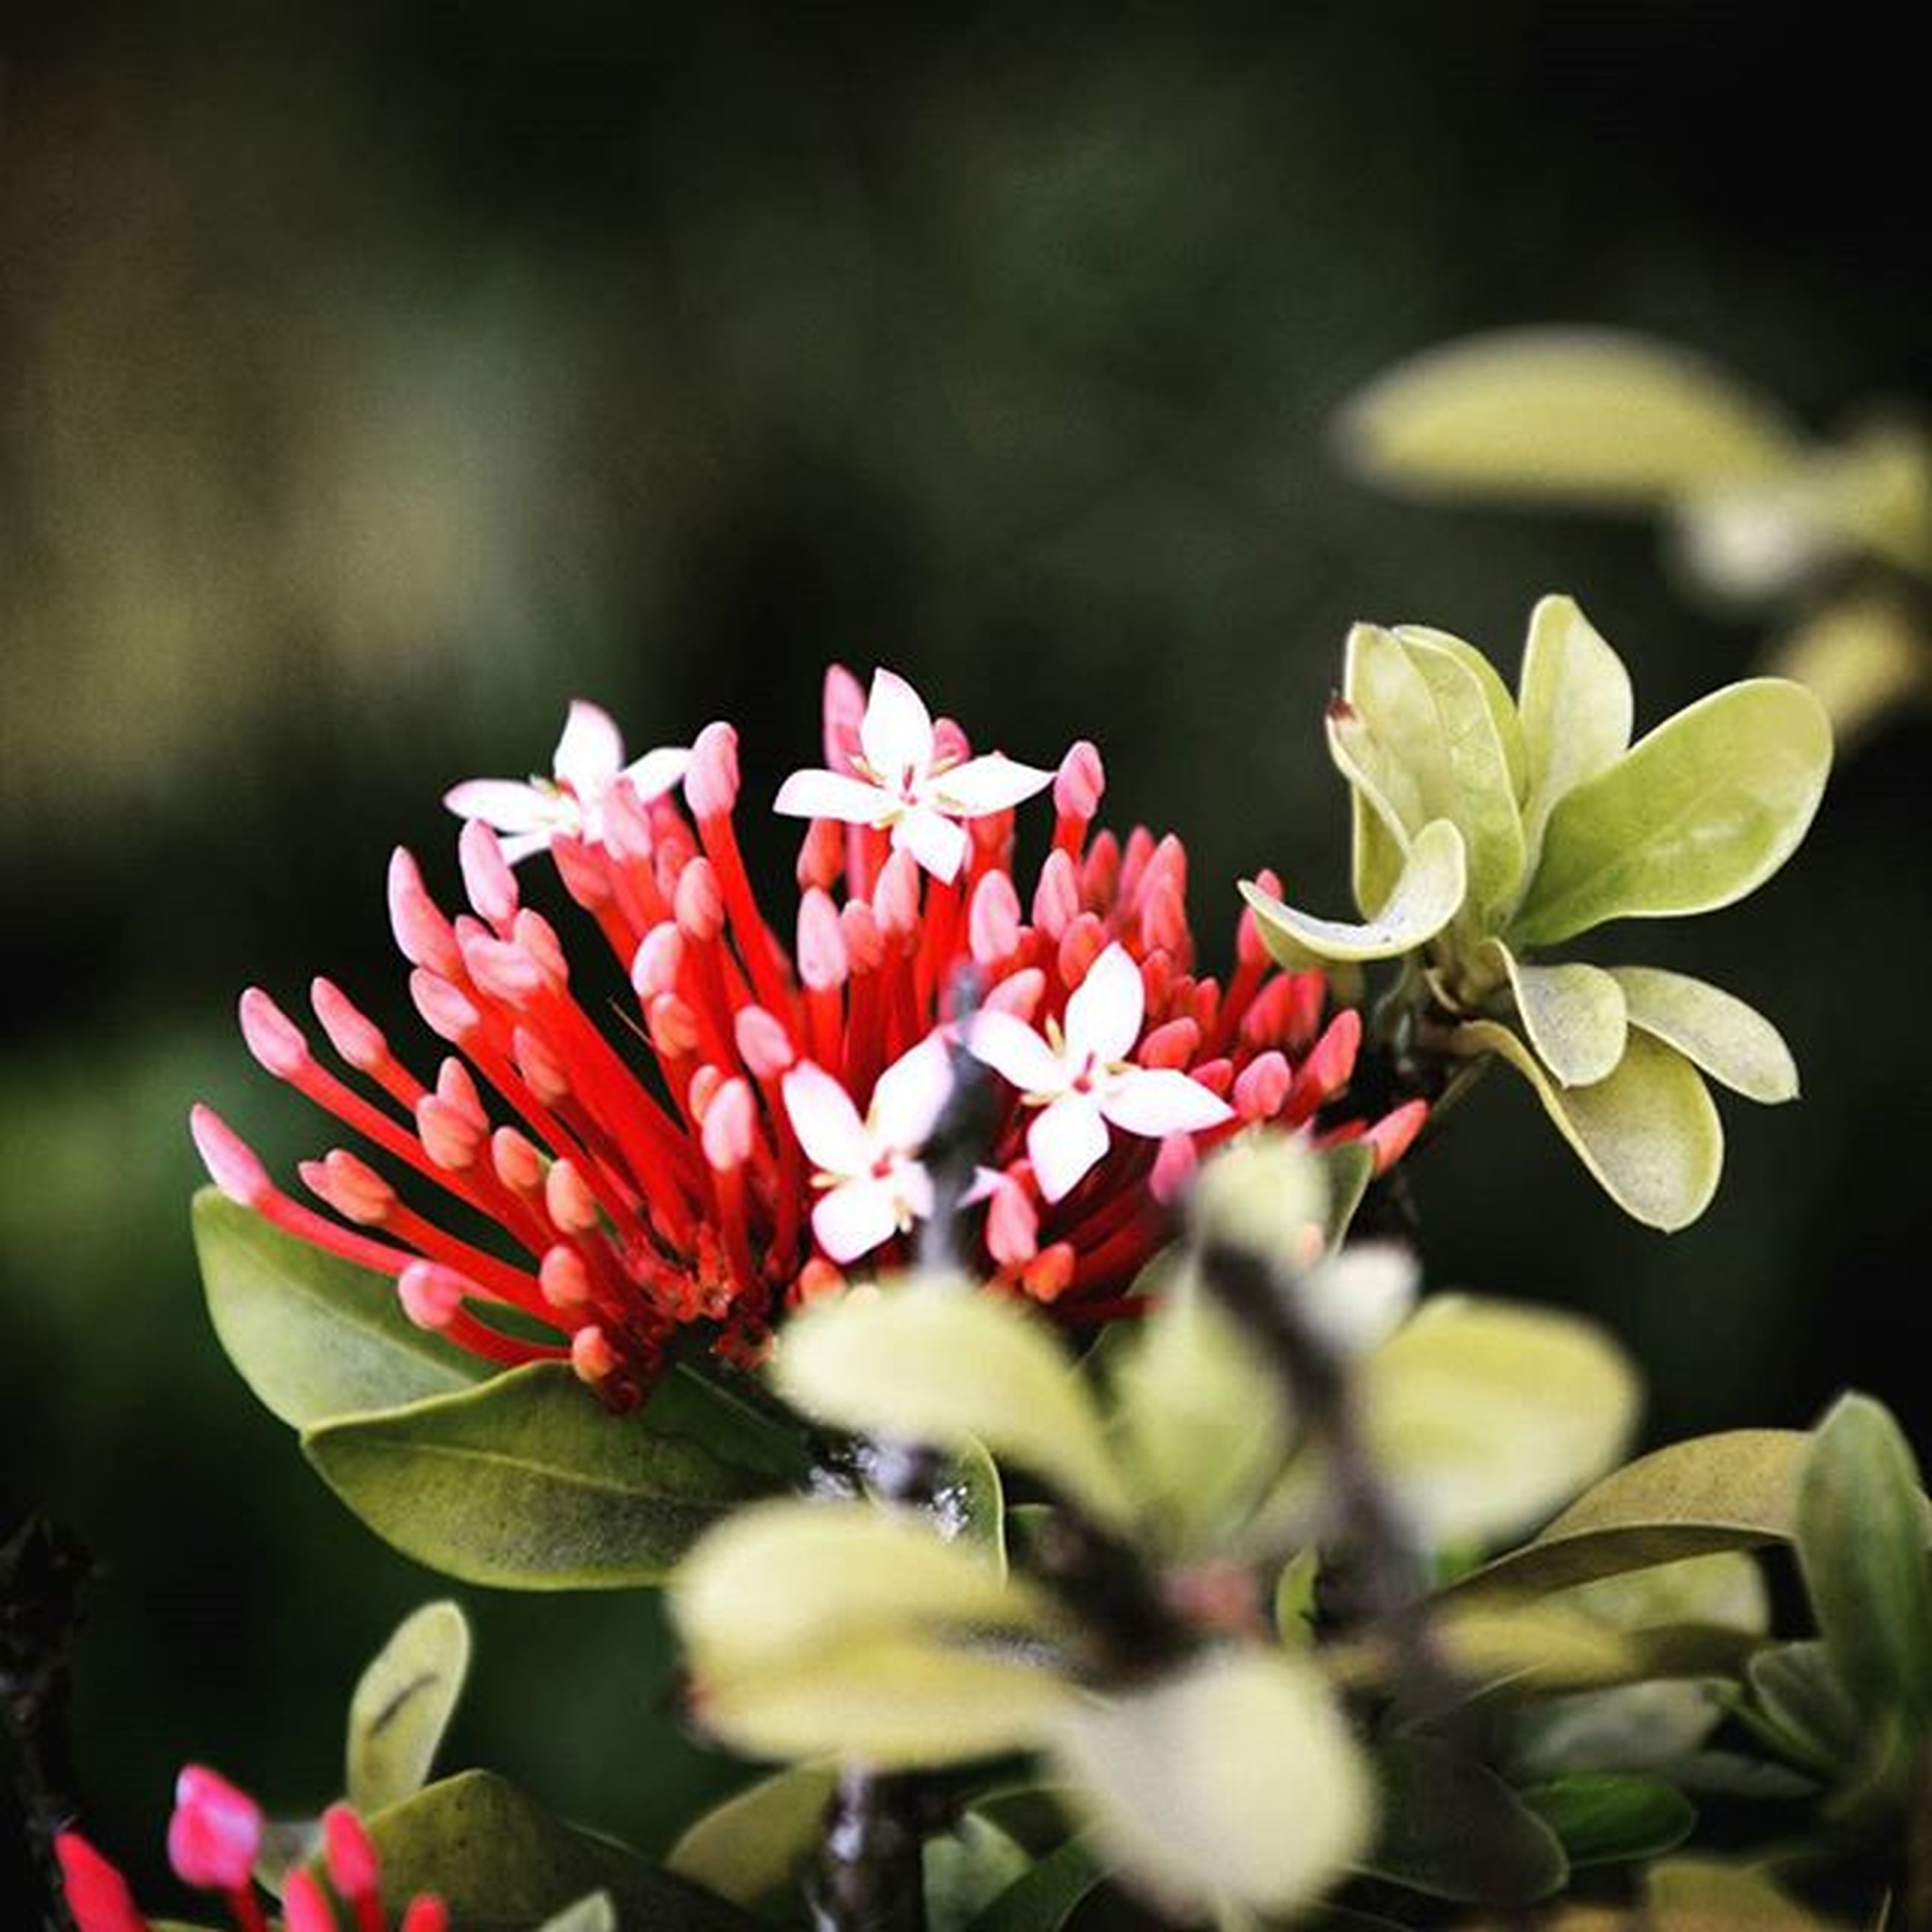 flower, petal, freshness, fragility, growth, flower head, focus on foreground, close-up, beauty in nature, plant, nature, blooming, bud, in bloom, selective focus, stem, park - man made space, blossom, day, botany